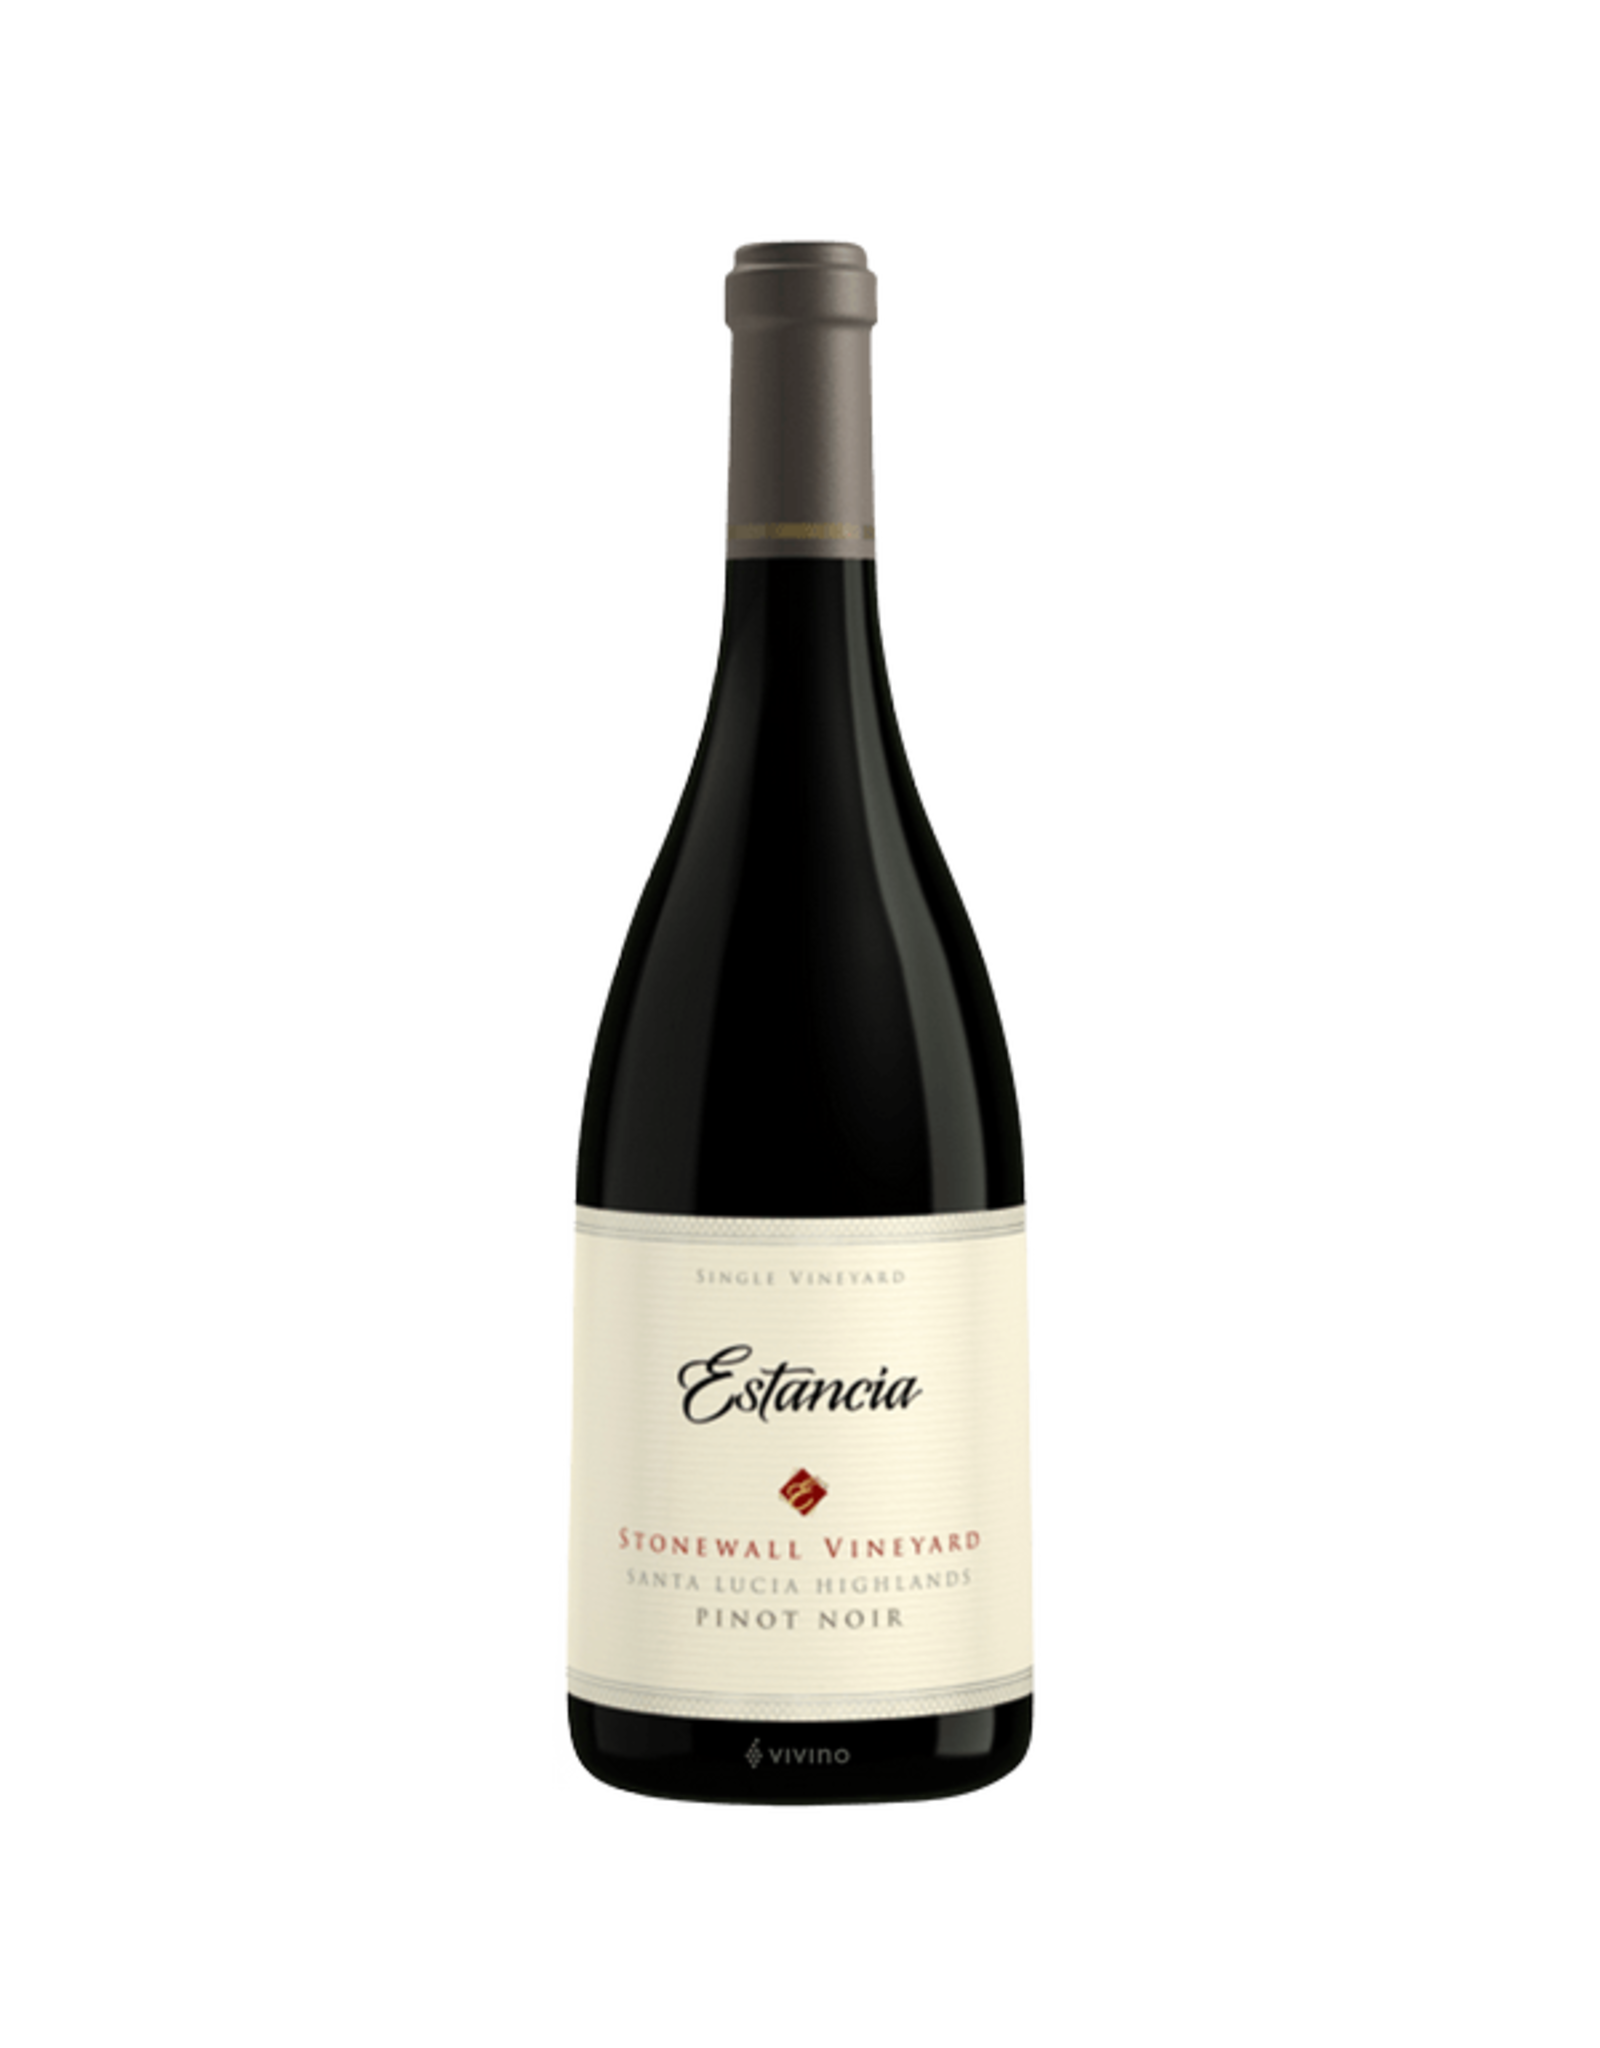 Estancia Pinot Noir Reserve Stonewall Vineyard 2014